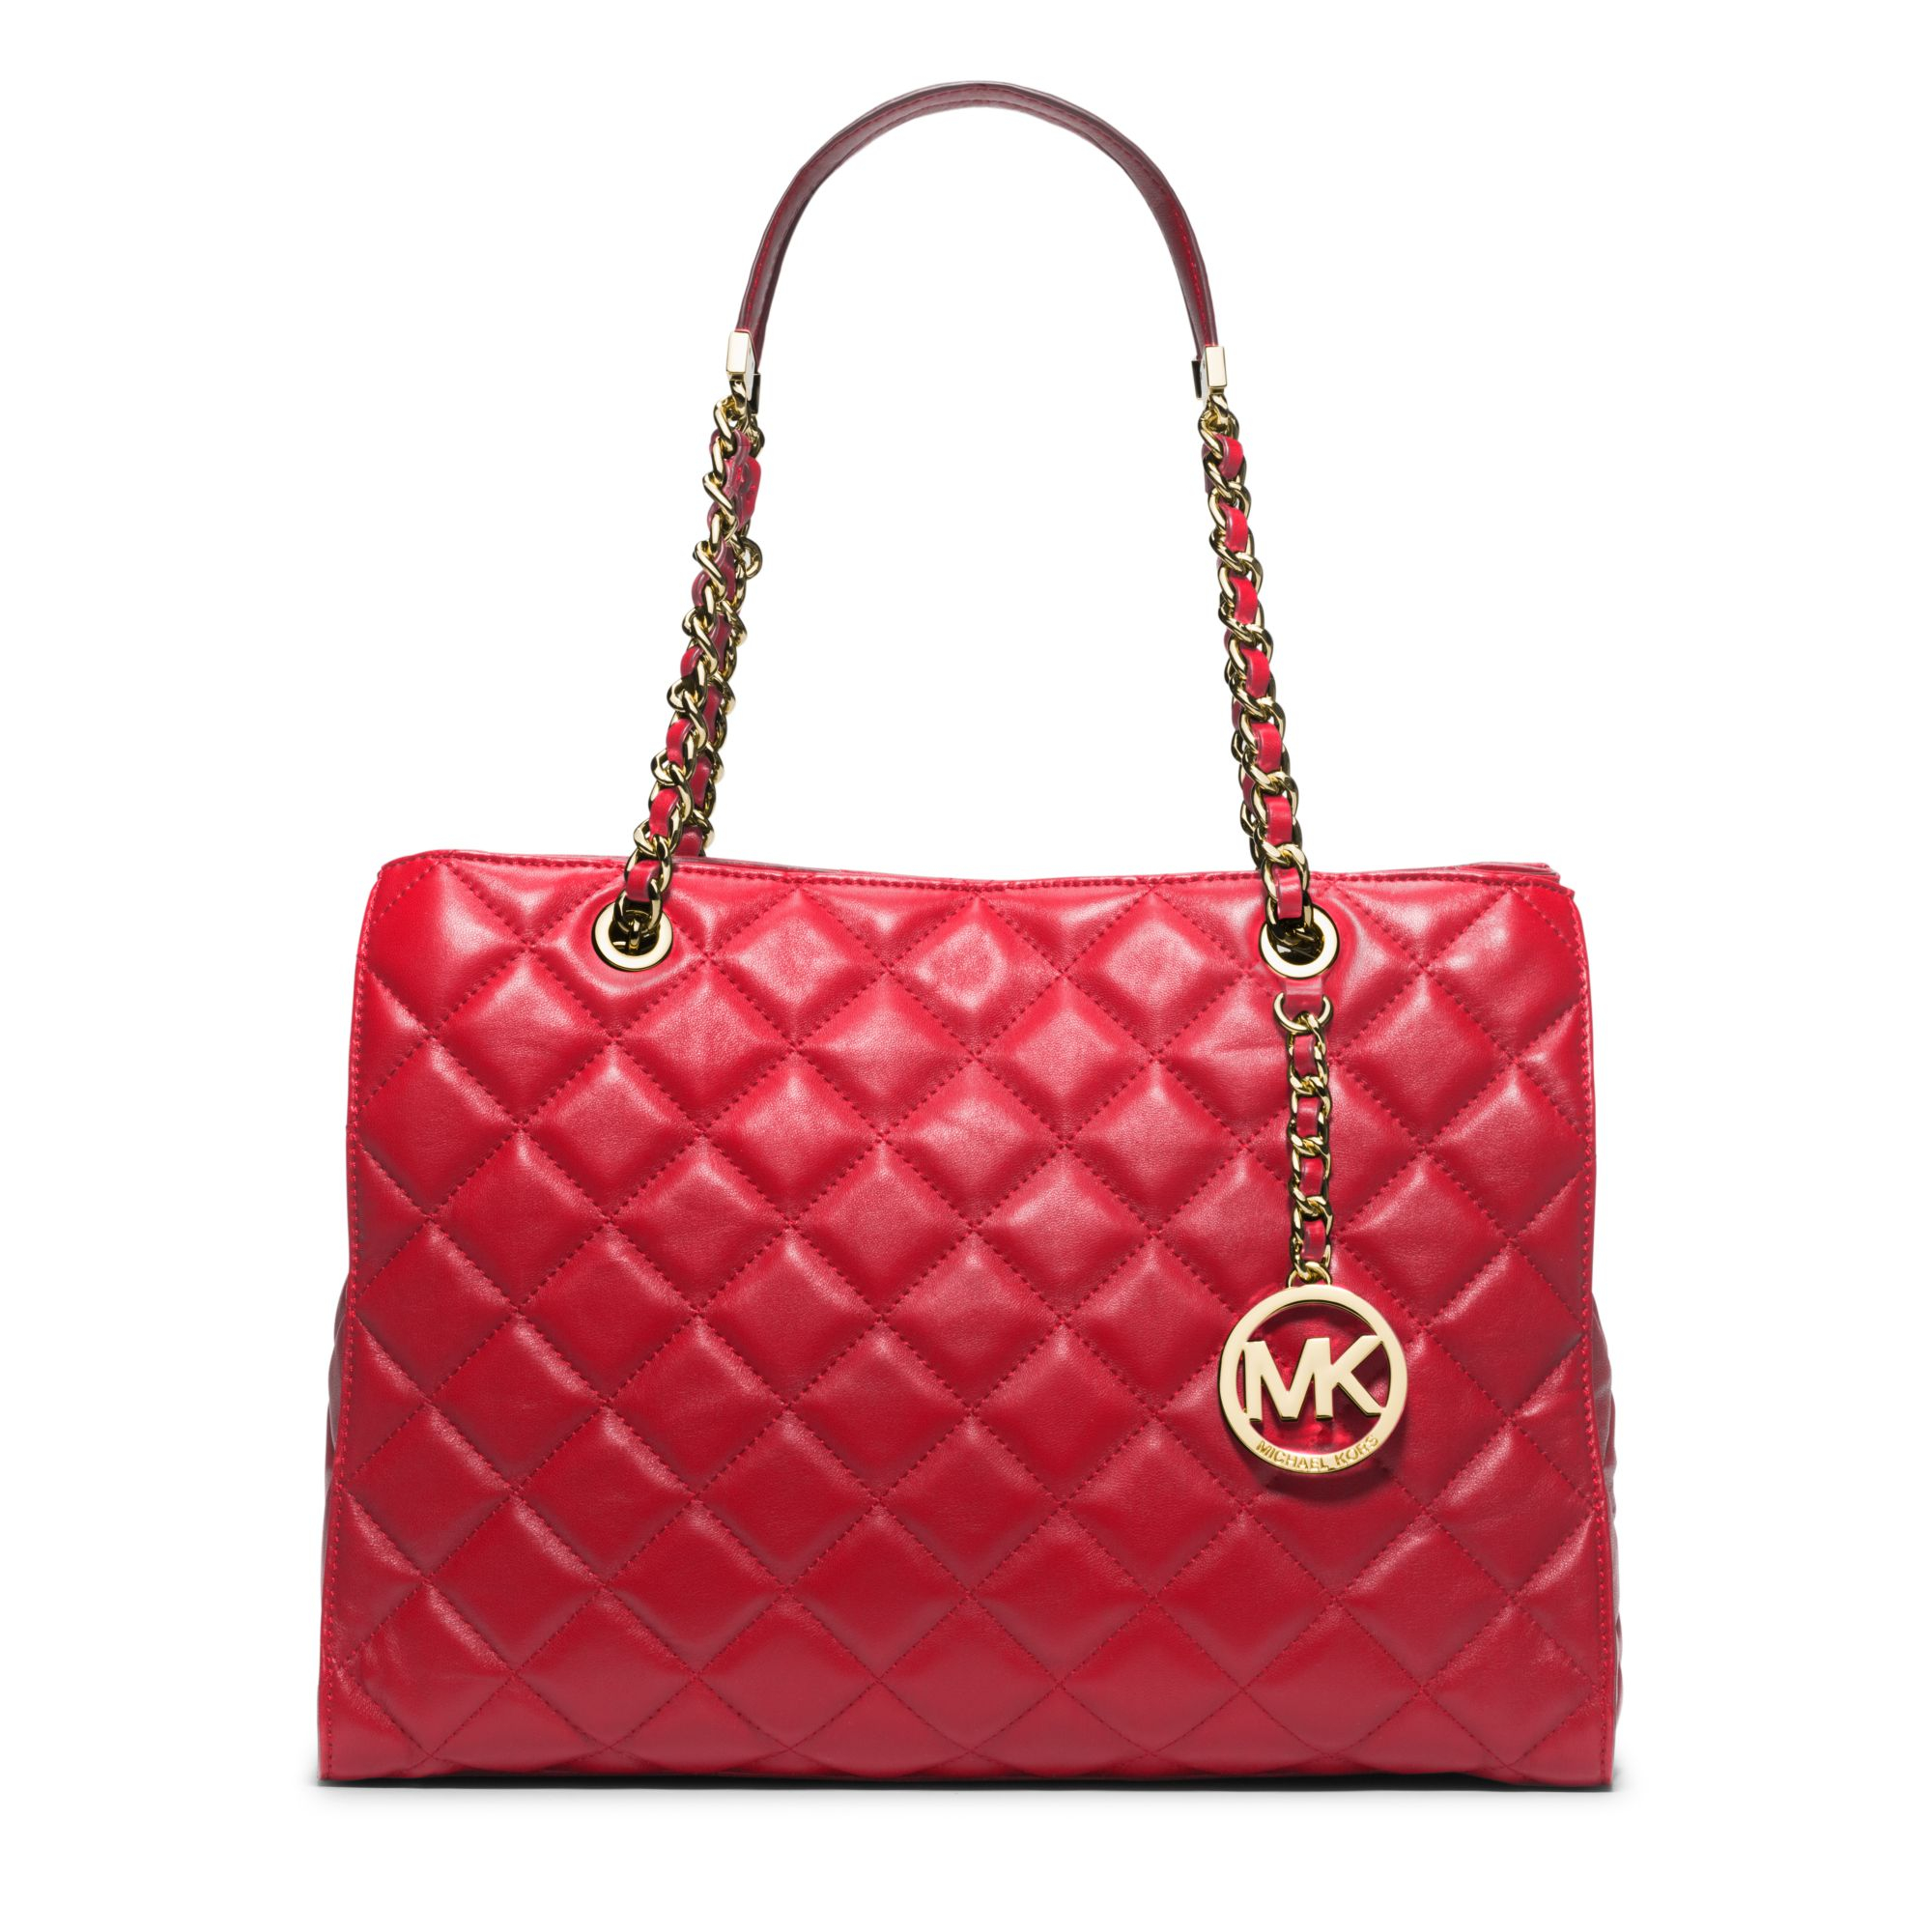 Michael kors Susannah Large Quilted-Leather Tote in Red | Lyst